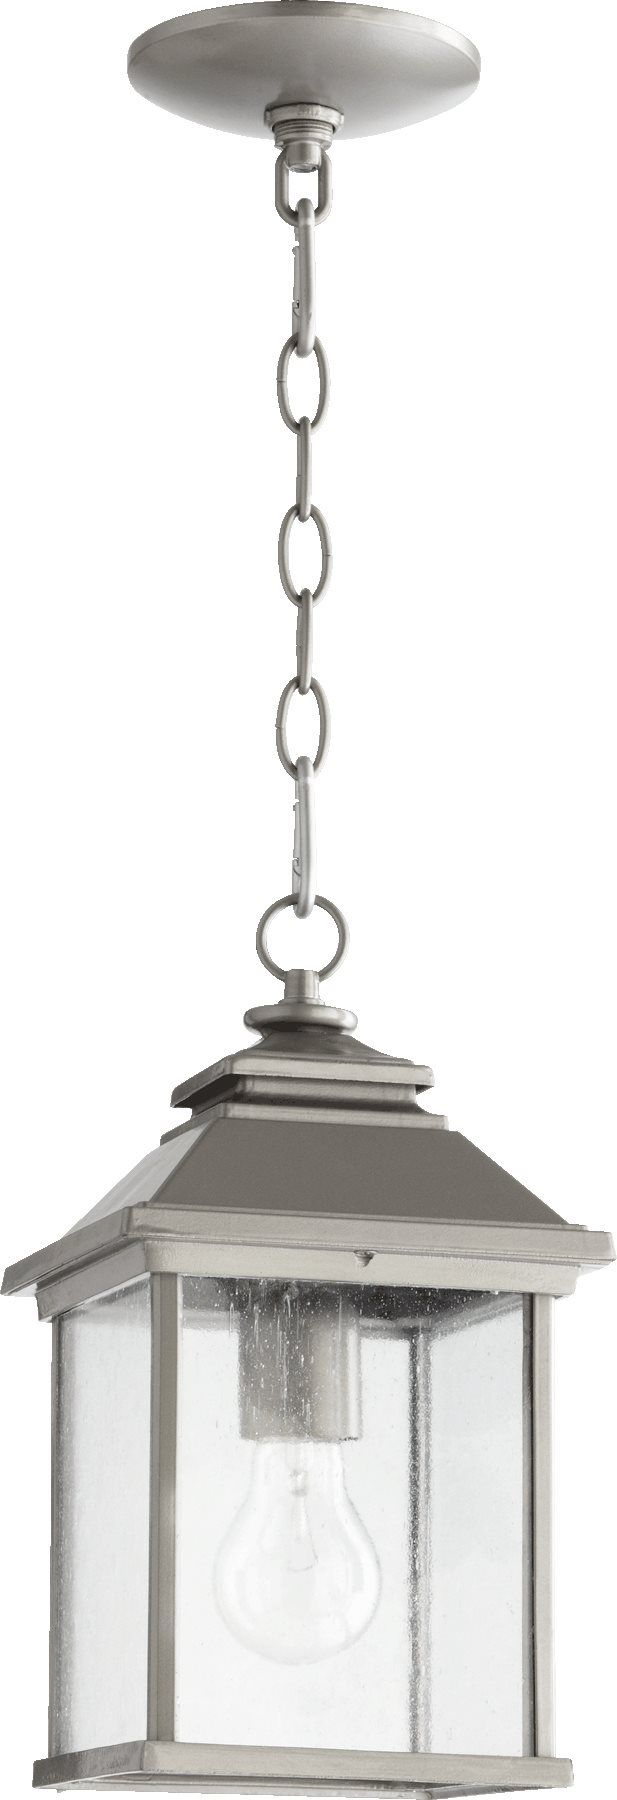 South Shore Decorating: Quorum Lighting 7941-7-3 Pearson Transitional Outdoor Hanging Light QR-7941-7-3